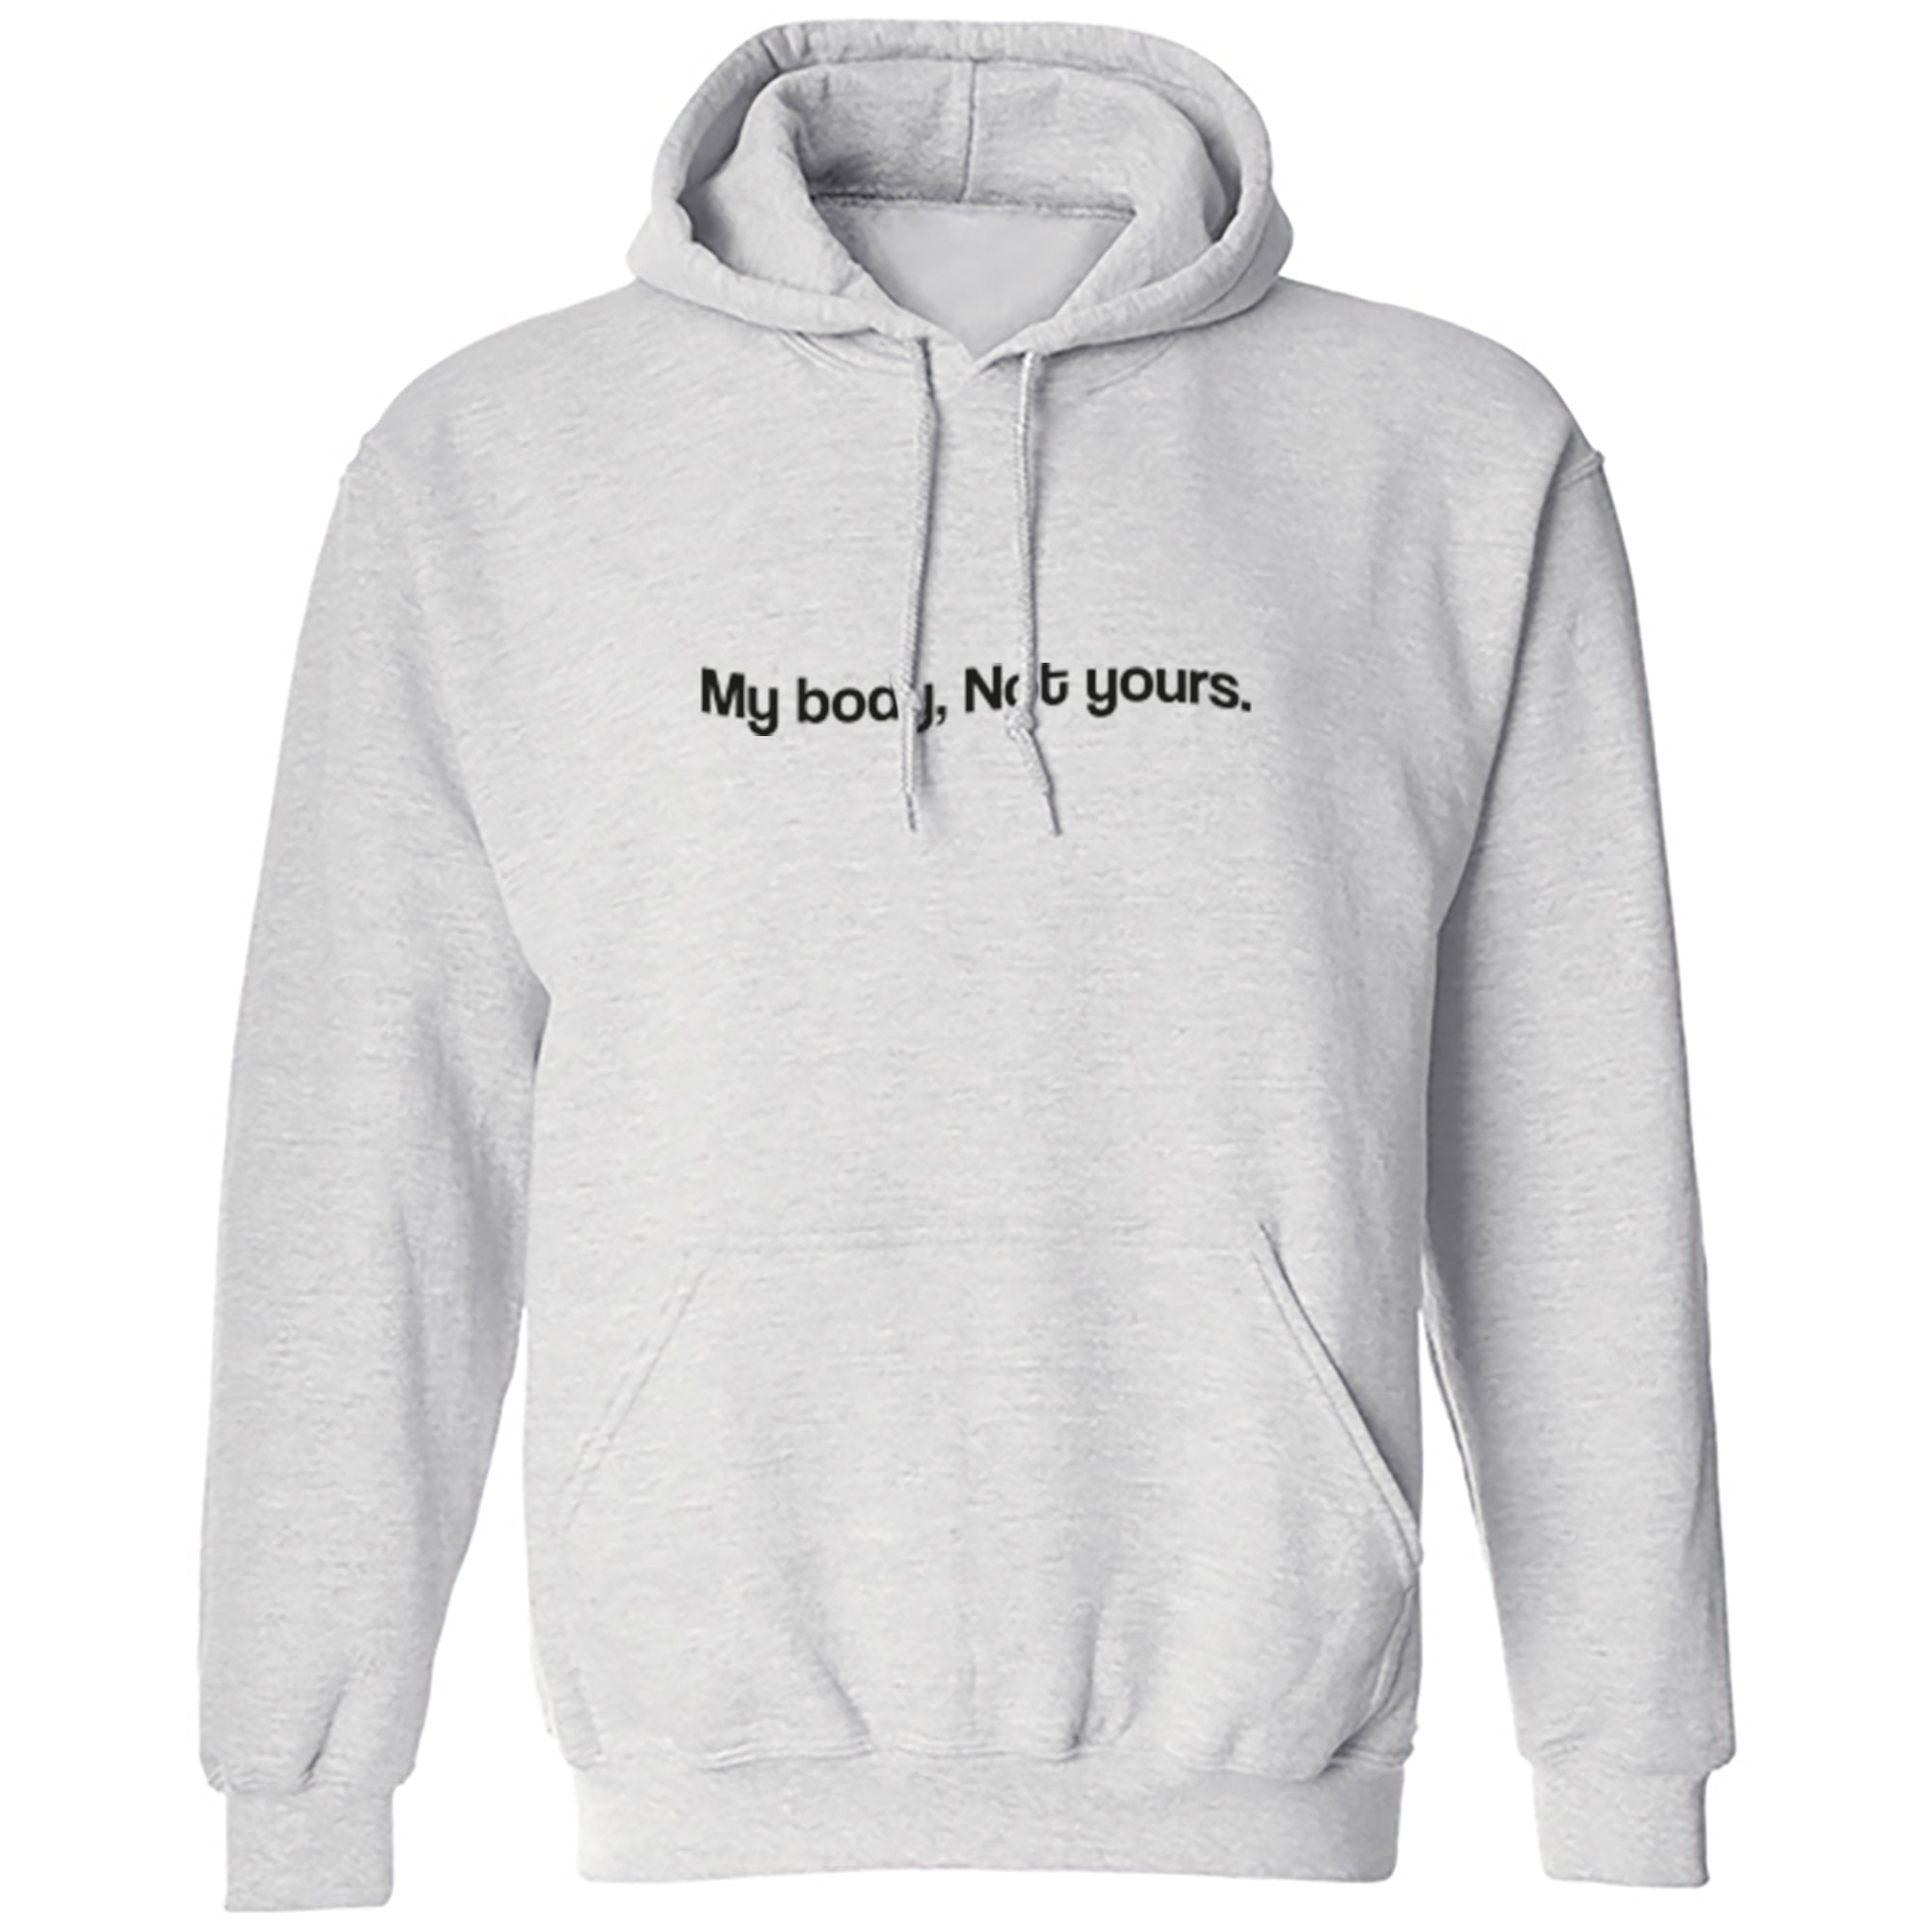 My Body, Not Yours Unisex Hoodie S1181 - Illustrated Identity Ltd.